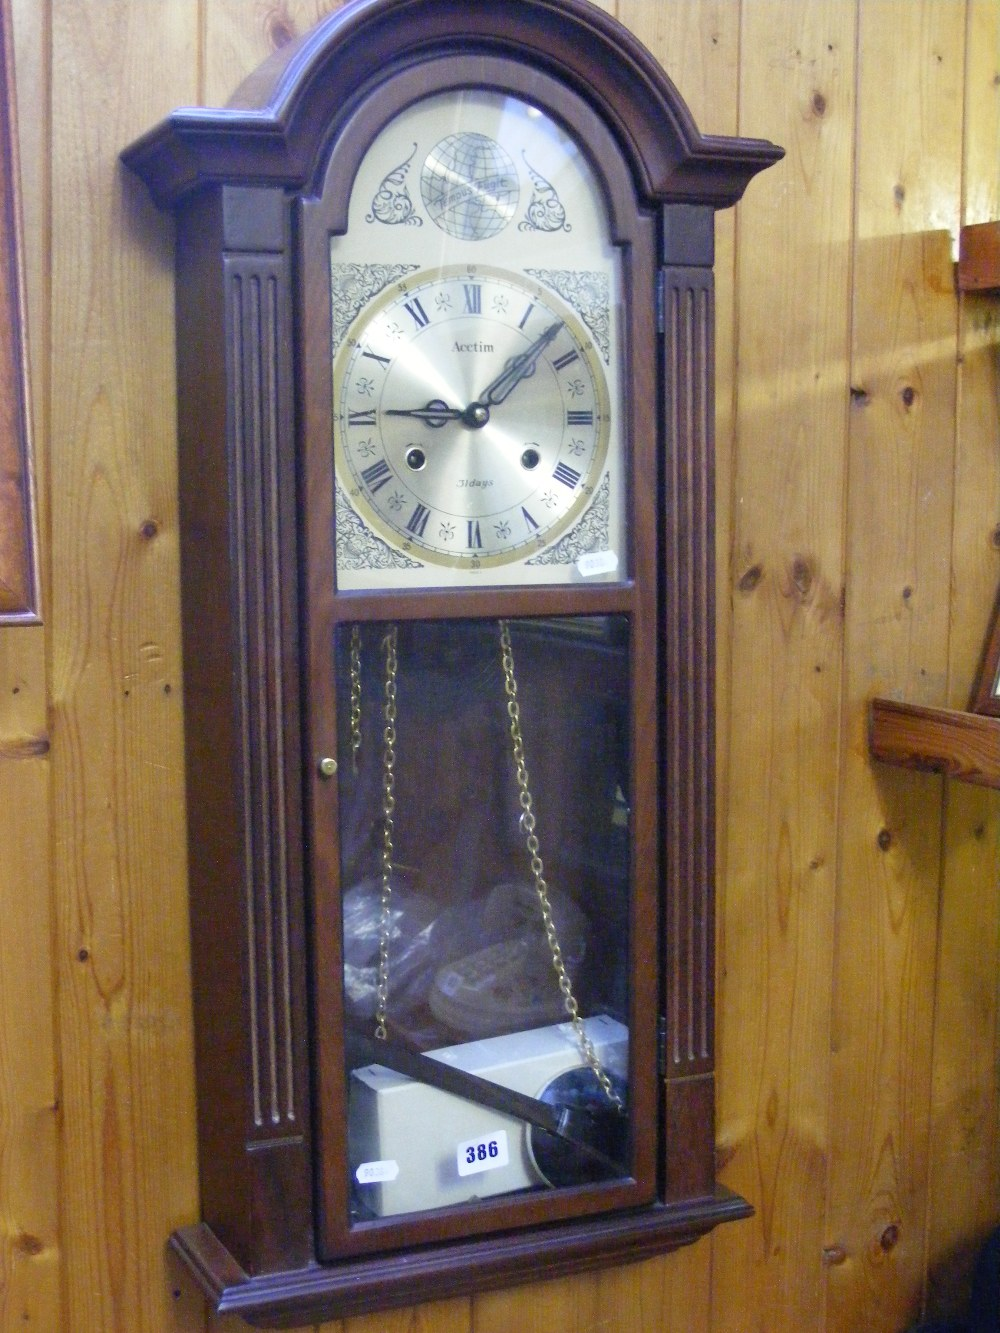 An acctim 31 day wall clock lot 386 an acctim 31 day wall clock amipublicfo Image collections